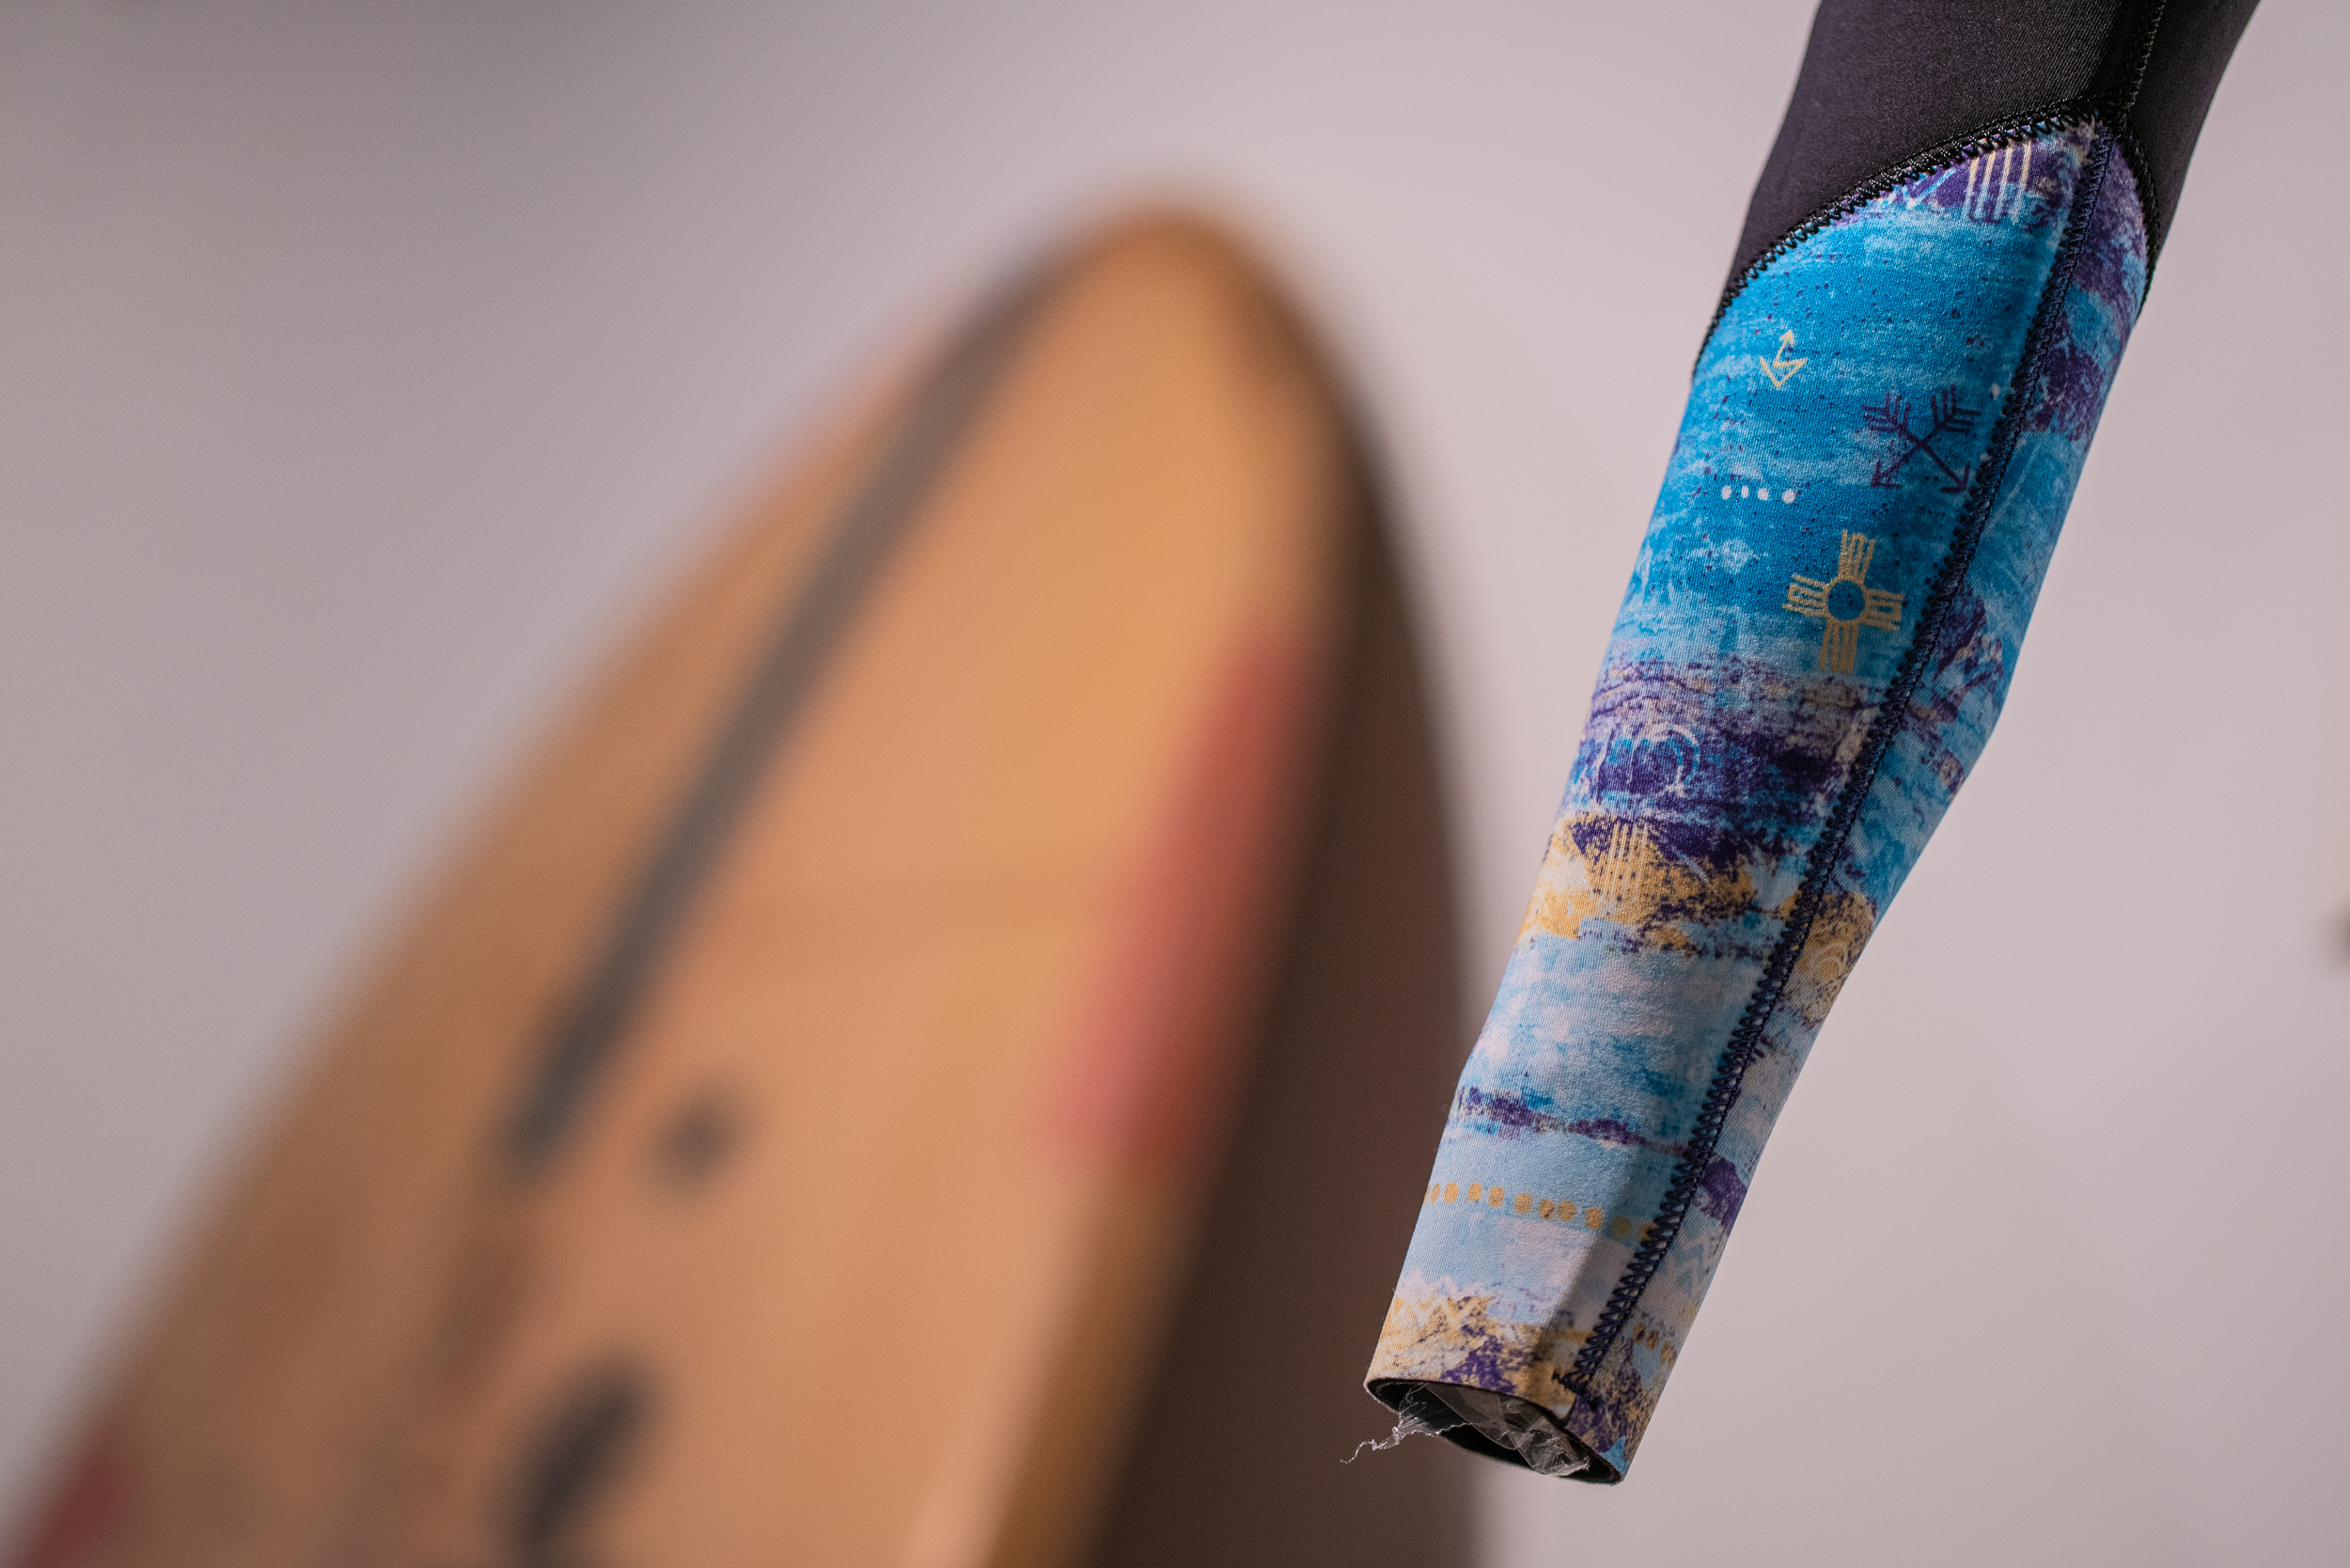 MaterialRevolution_KrisKish-9.jpg